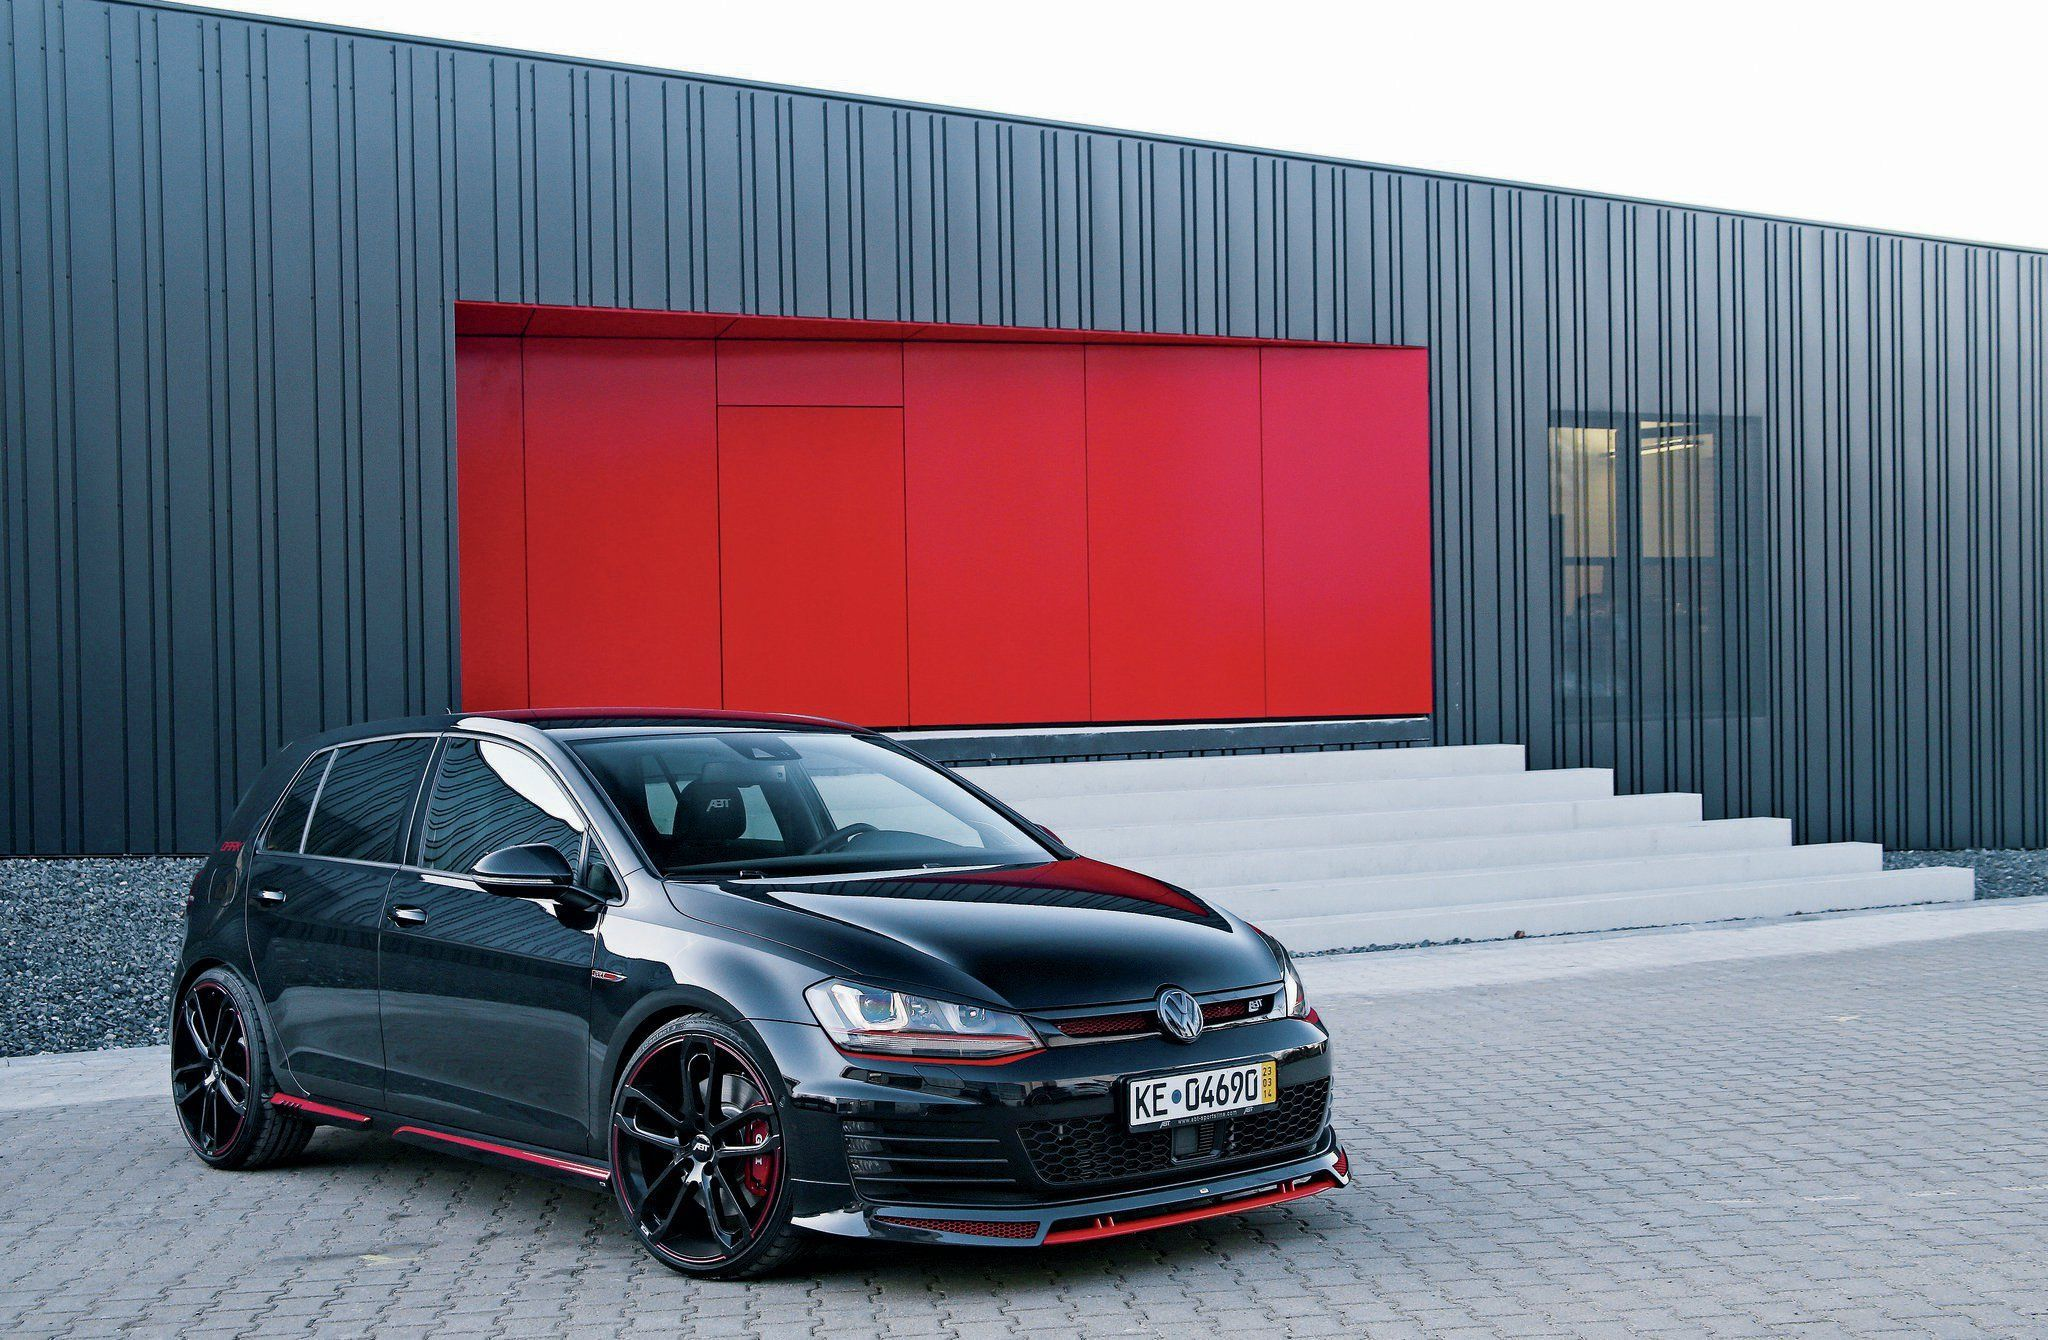 Vw Gti Wallpapers 1080p ~ Monodomo